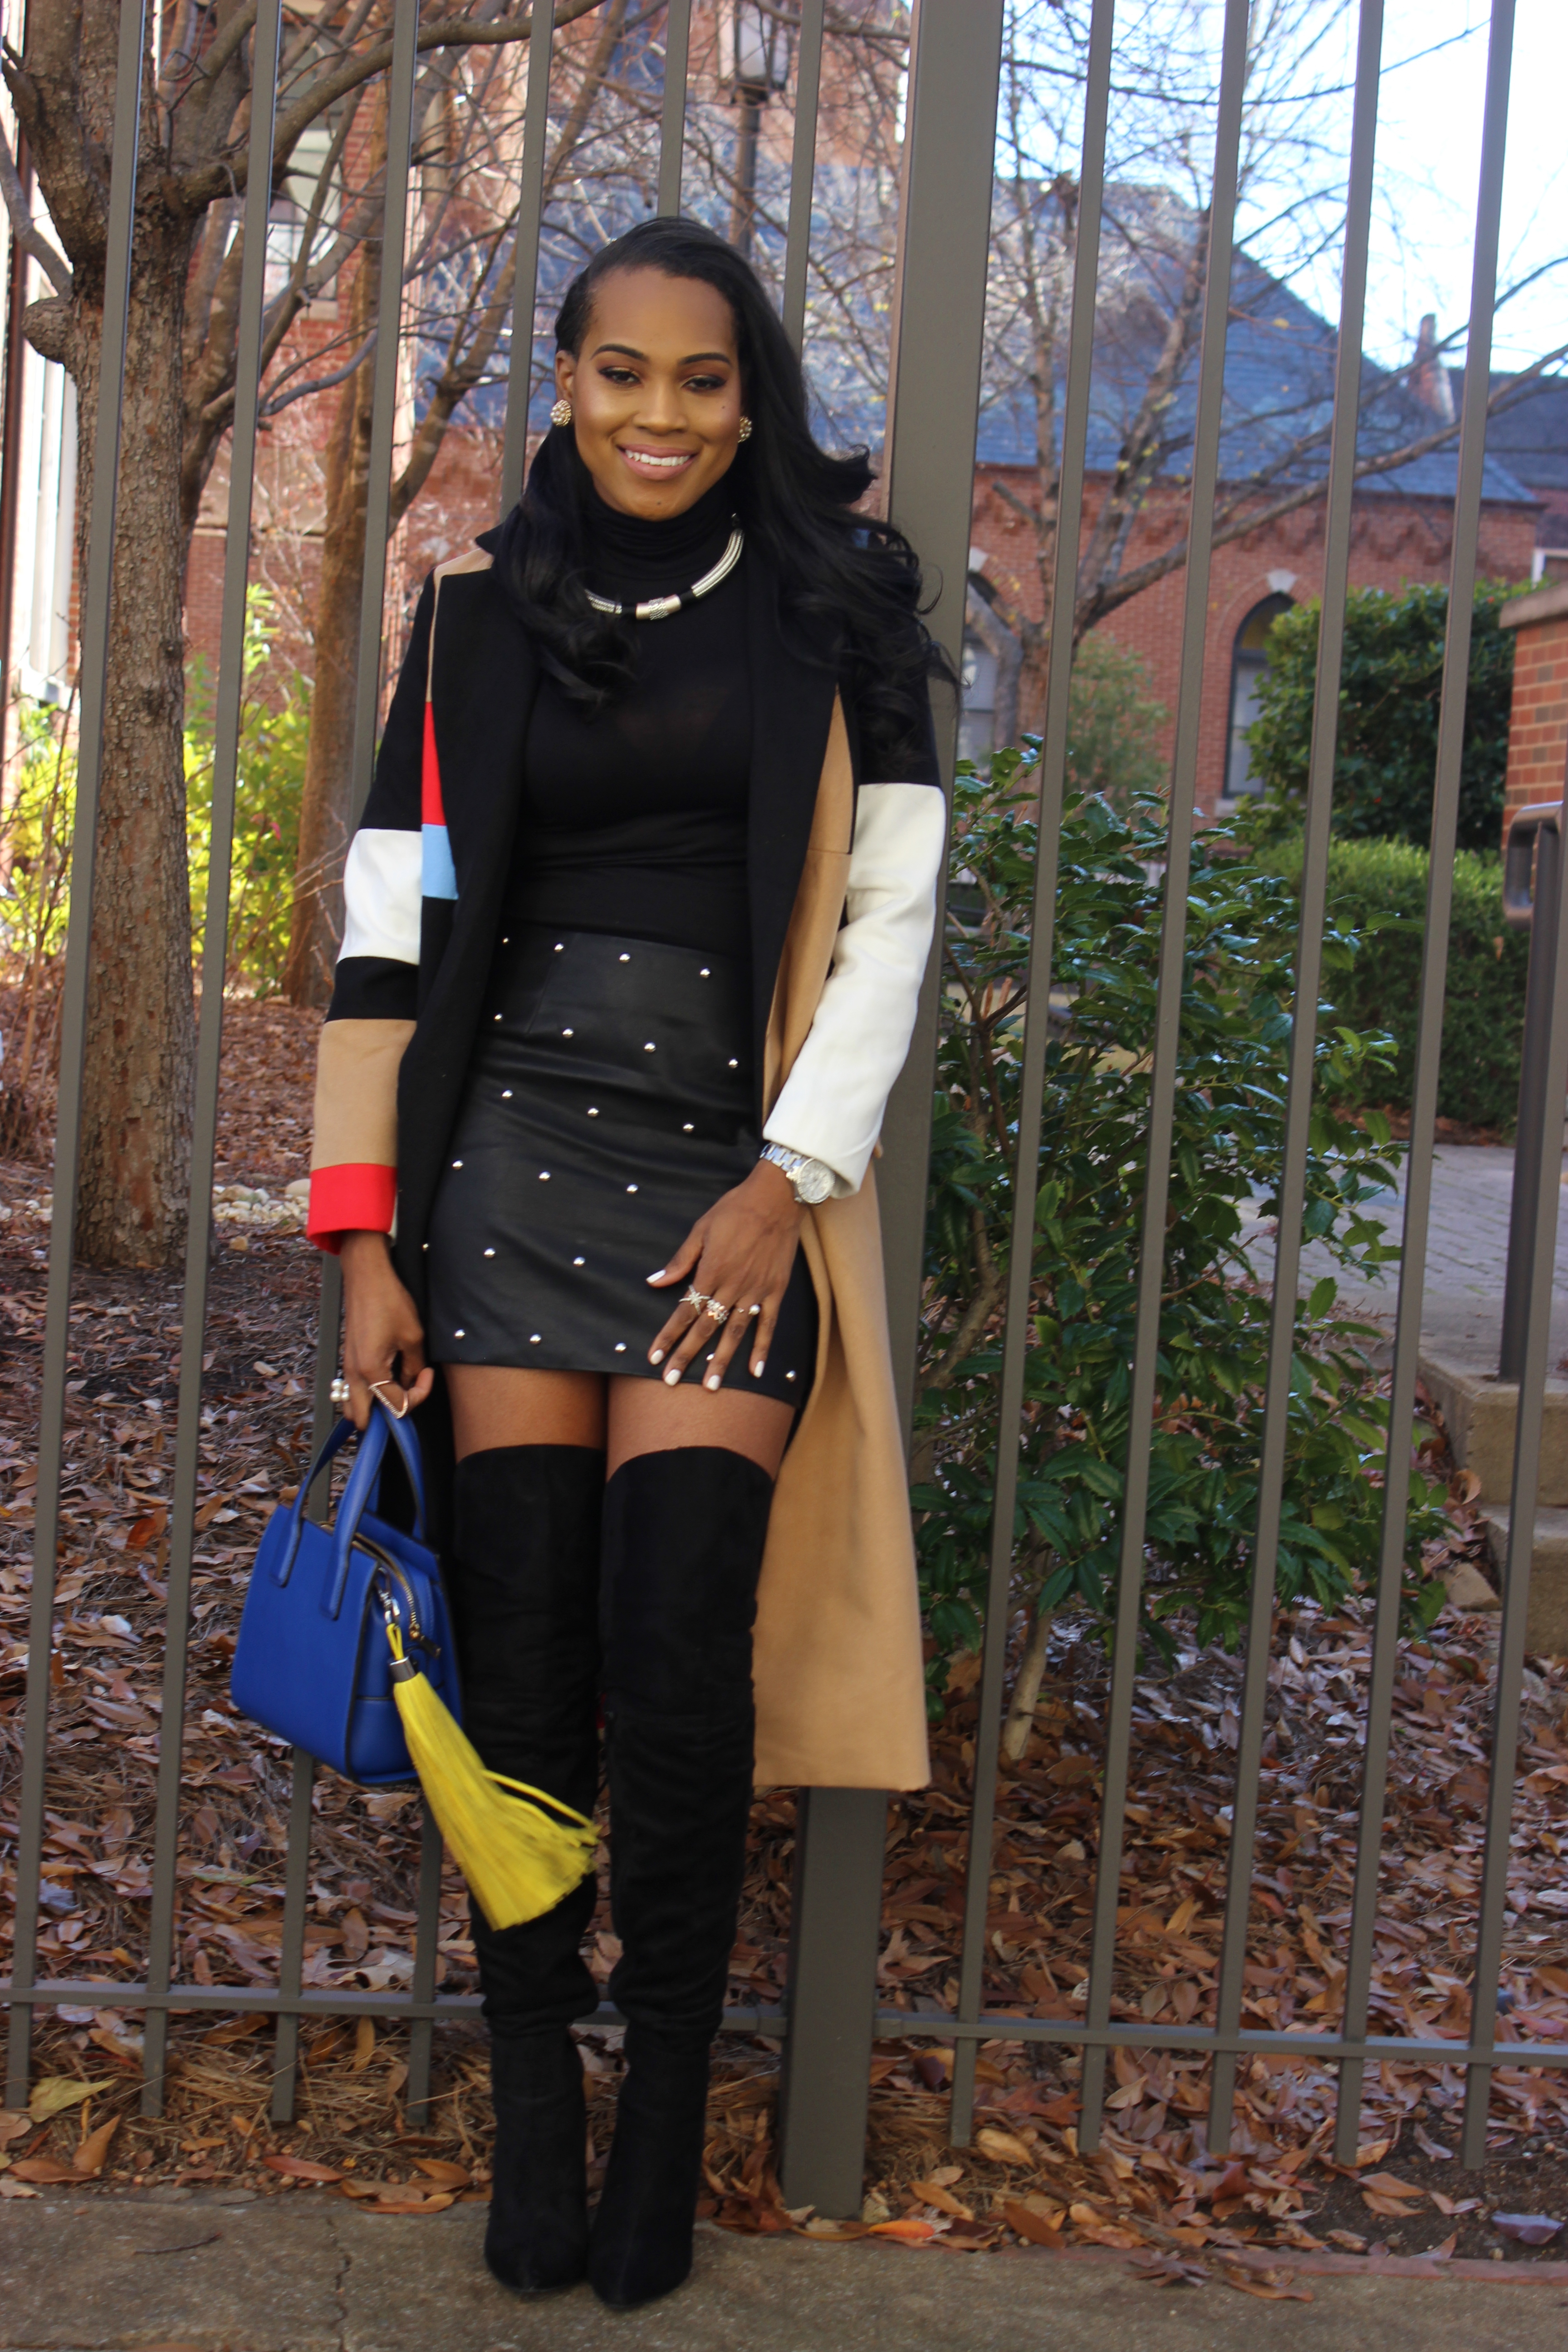 Style-Files-SheIn-Multicolor-Lapel-Color-Block-Coat-Forever21-Faux-Leather-studded-mini-skirt-black-sheer-turtleneck-Truffle-Collection-Over- The-Knee-Lace-Up-Back-High-Heeled-Boots-Hot-Pink-Beanie-Winter-Coat-Style-Guide-Oohlalablog-6